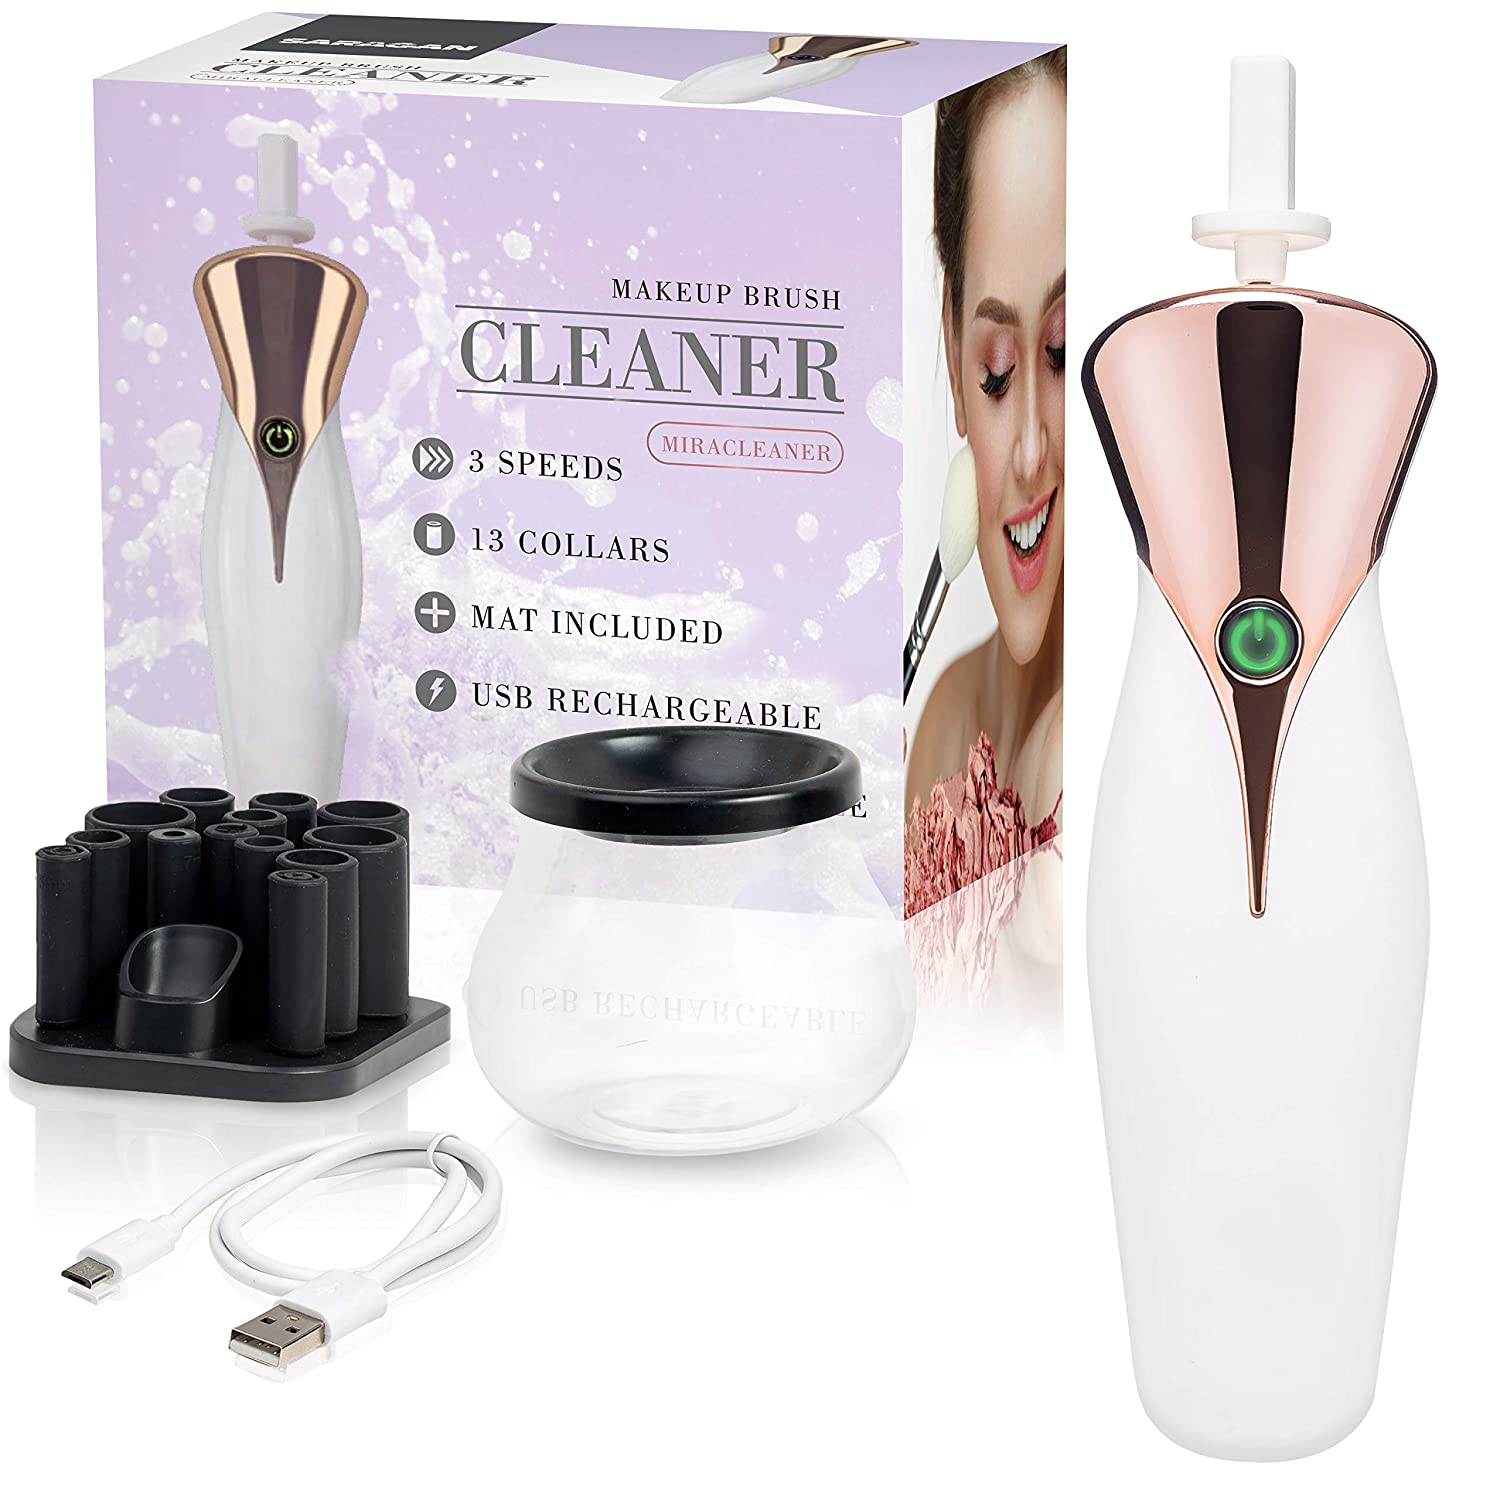 Pro Makeup Brush Cleaner & Dryer Kit - The Best Professional Makeup Brush Cleaning Tool: Washing and Drying All Cosmetic MakeUp Brushes - 3 Speeds, 13 Collars - Natural Cleaning Solution - By Saragan